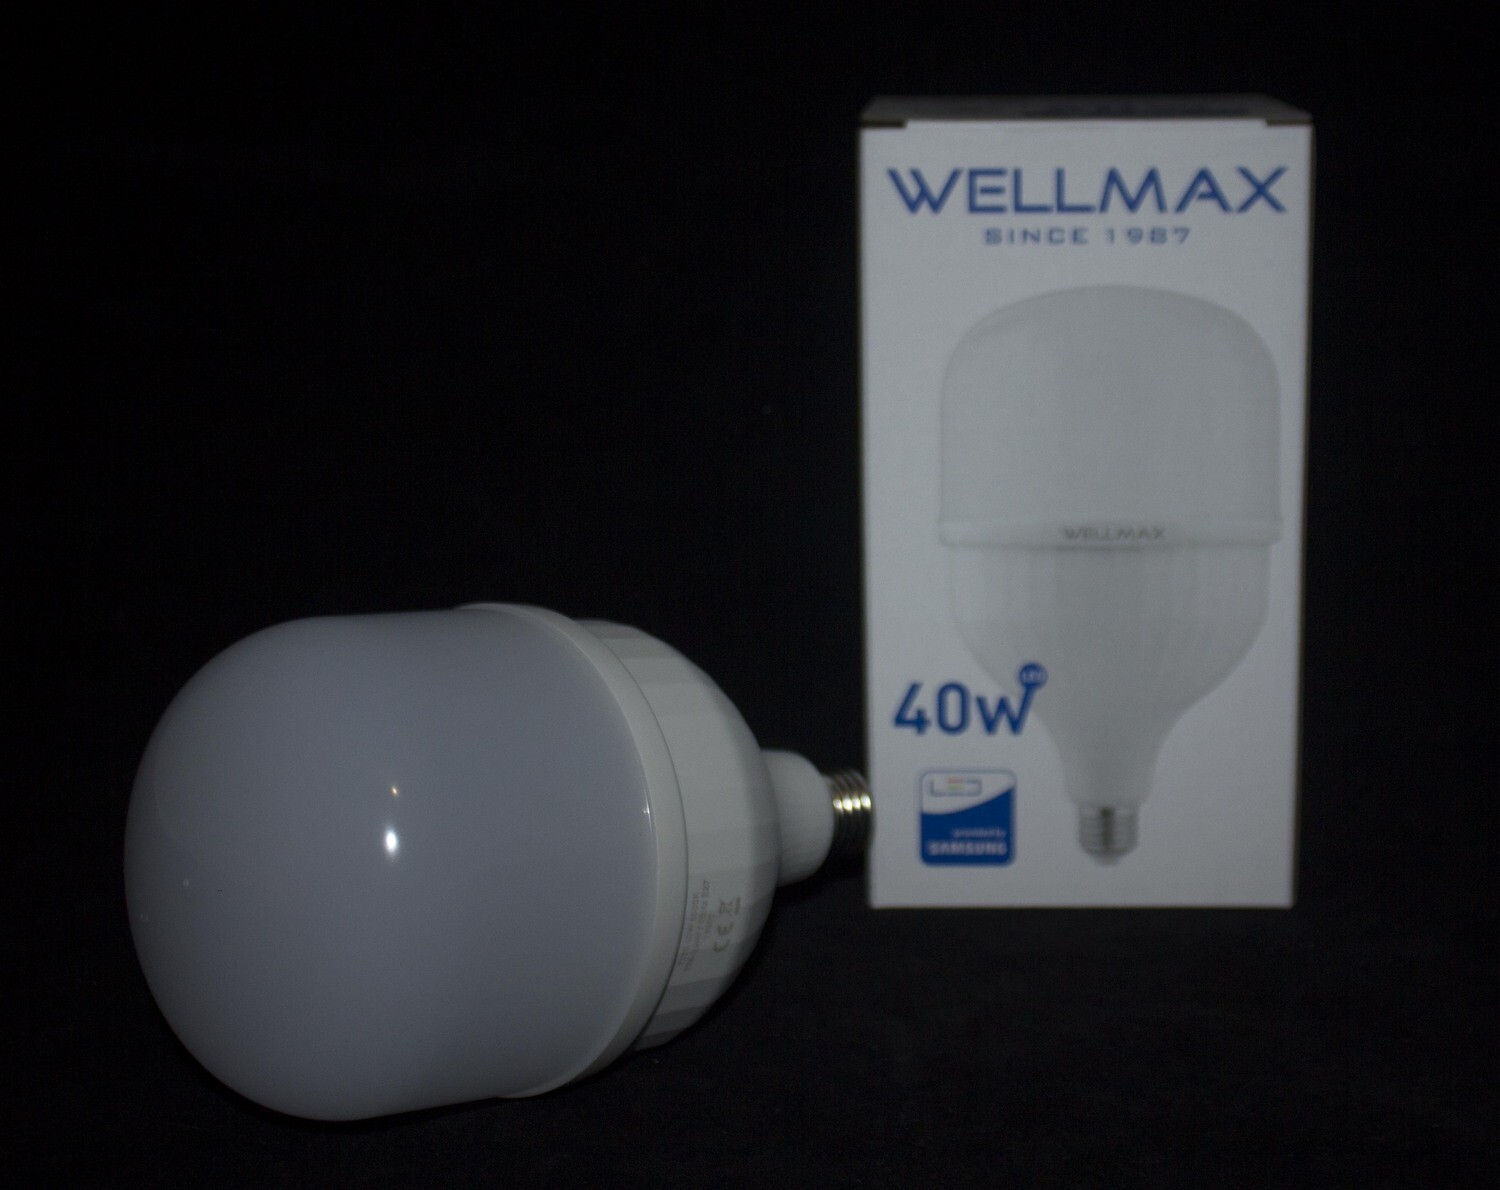 Էլ.լամպ LED Wellmax  40W (E27 6500K)